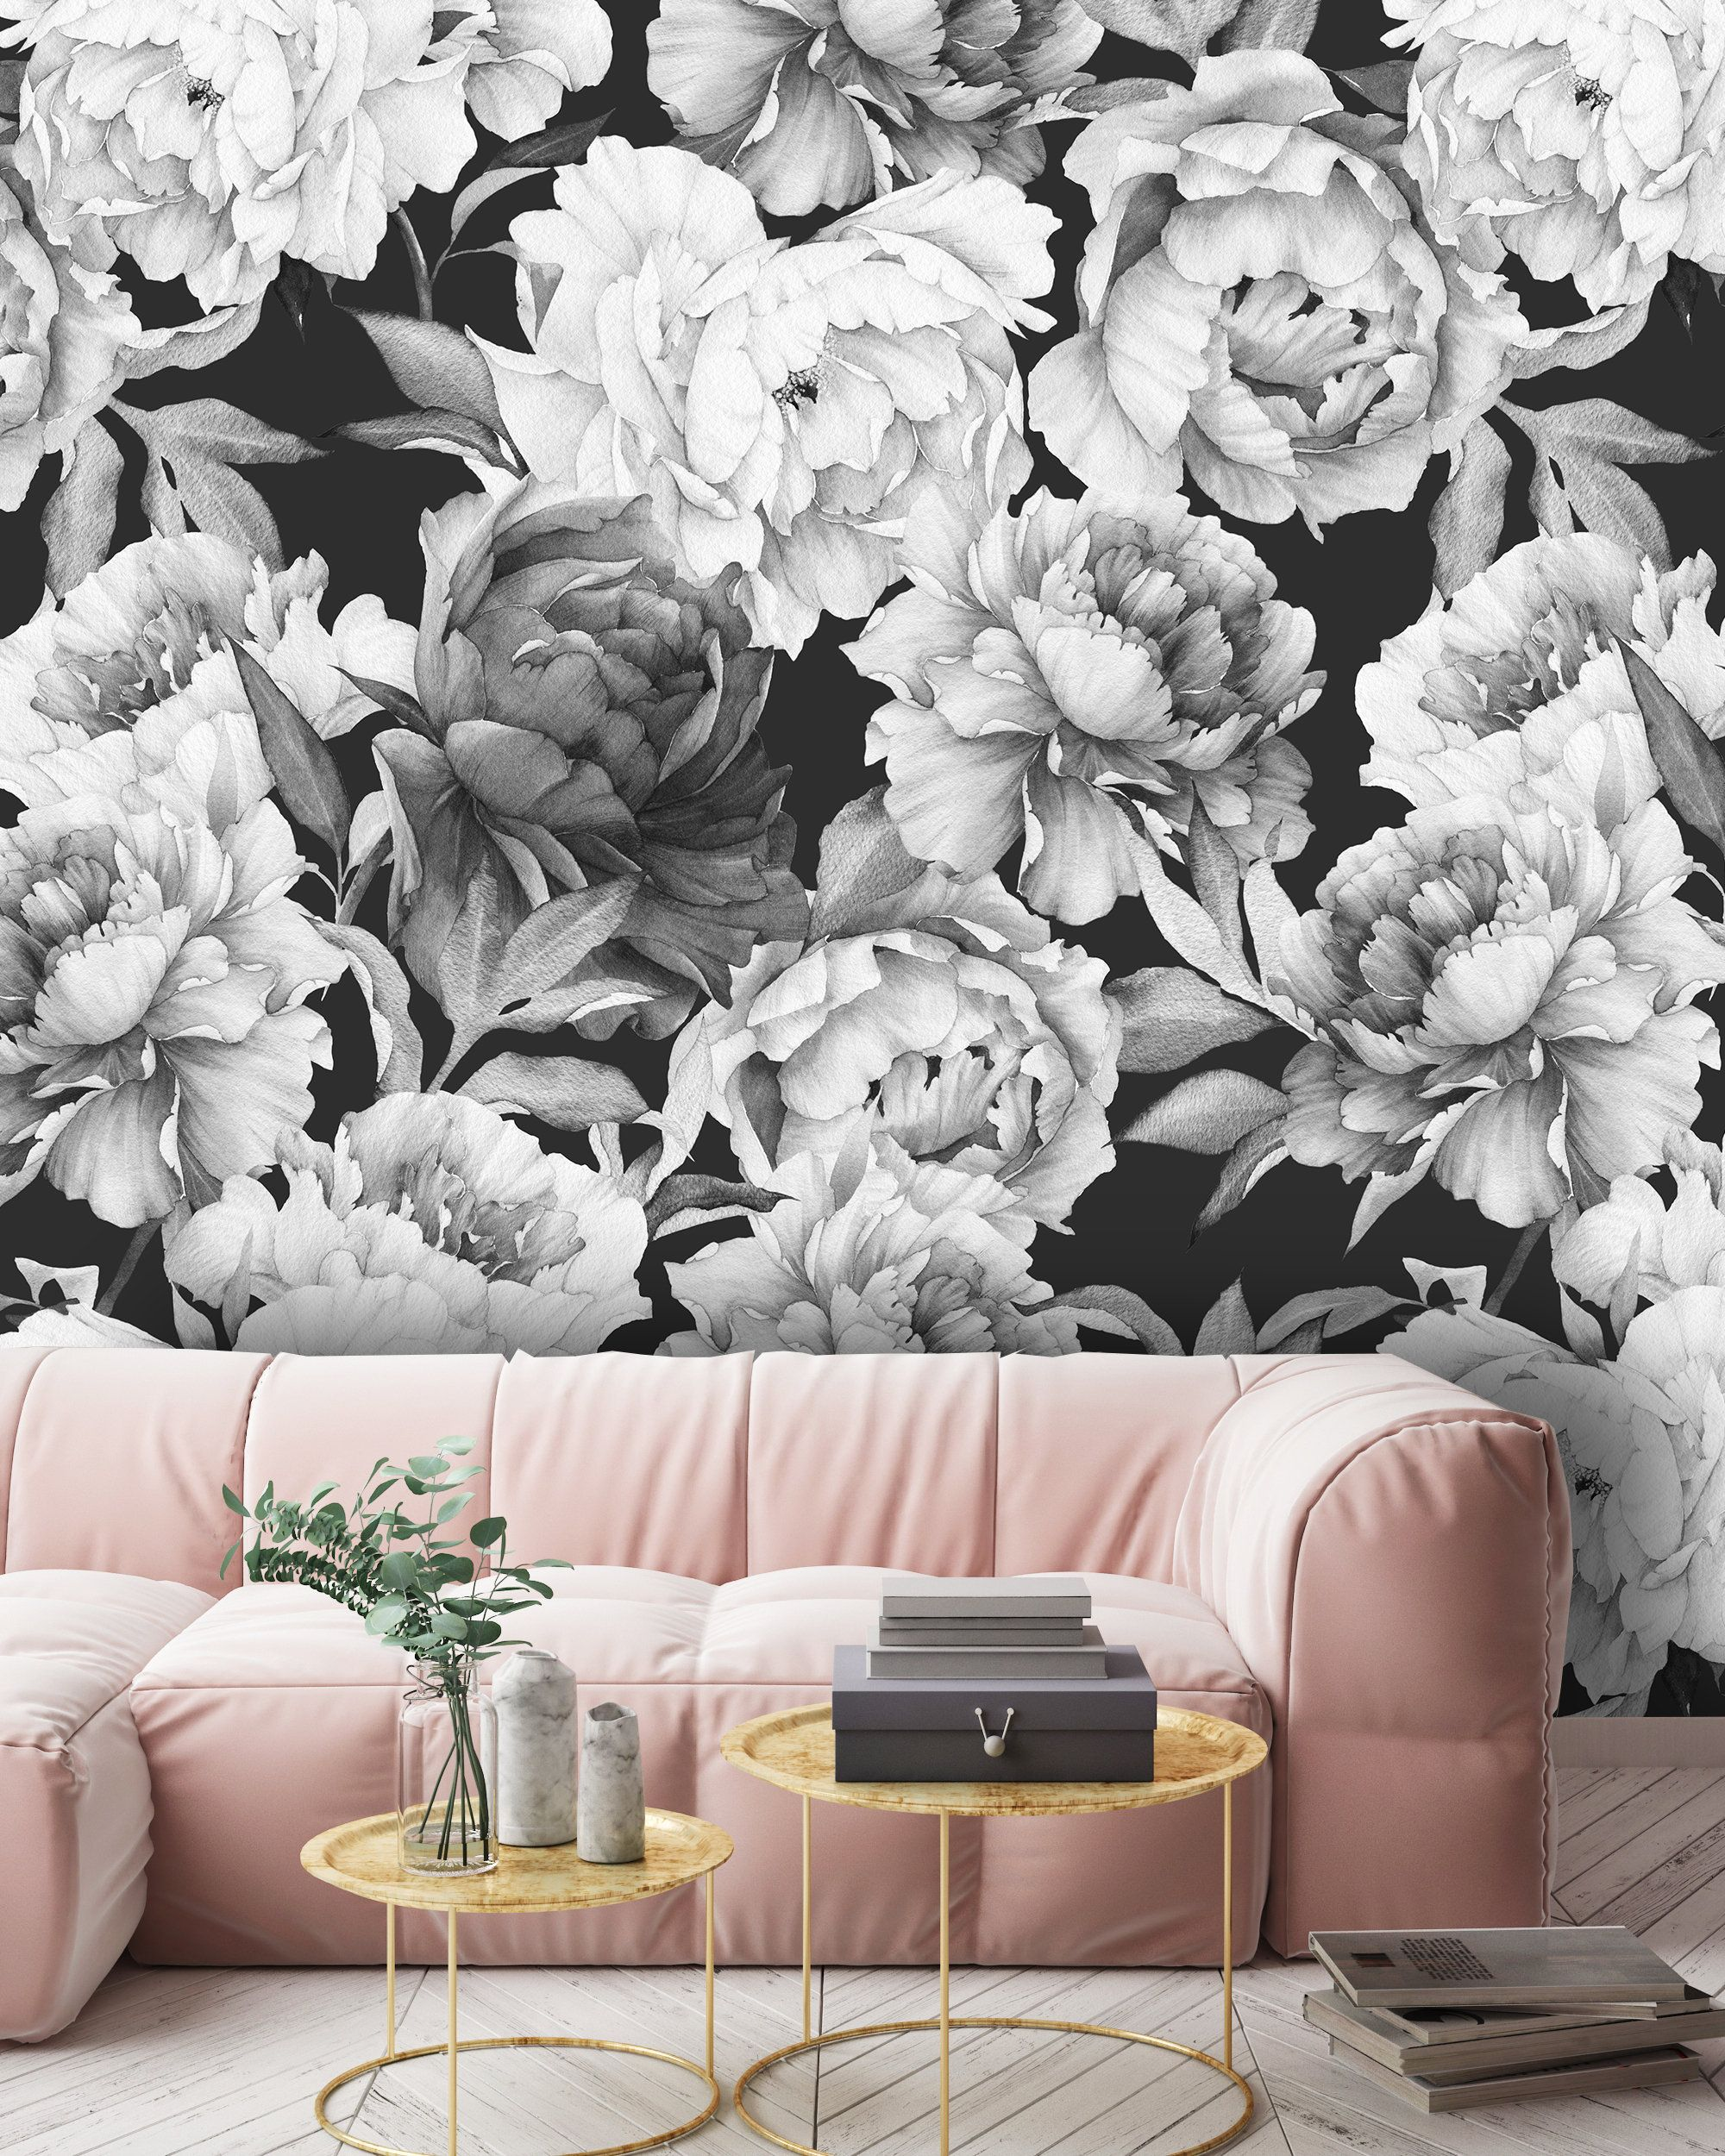 Removable Peel N Stick Wallpaper Self Adhesive Wall Etsy Peel N Stick Wallpaper Watercolor Floral Pattern Black Decor